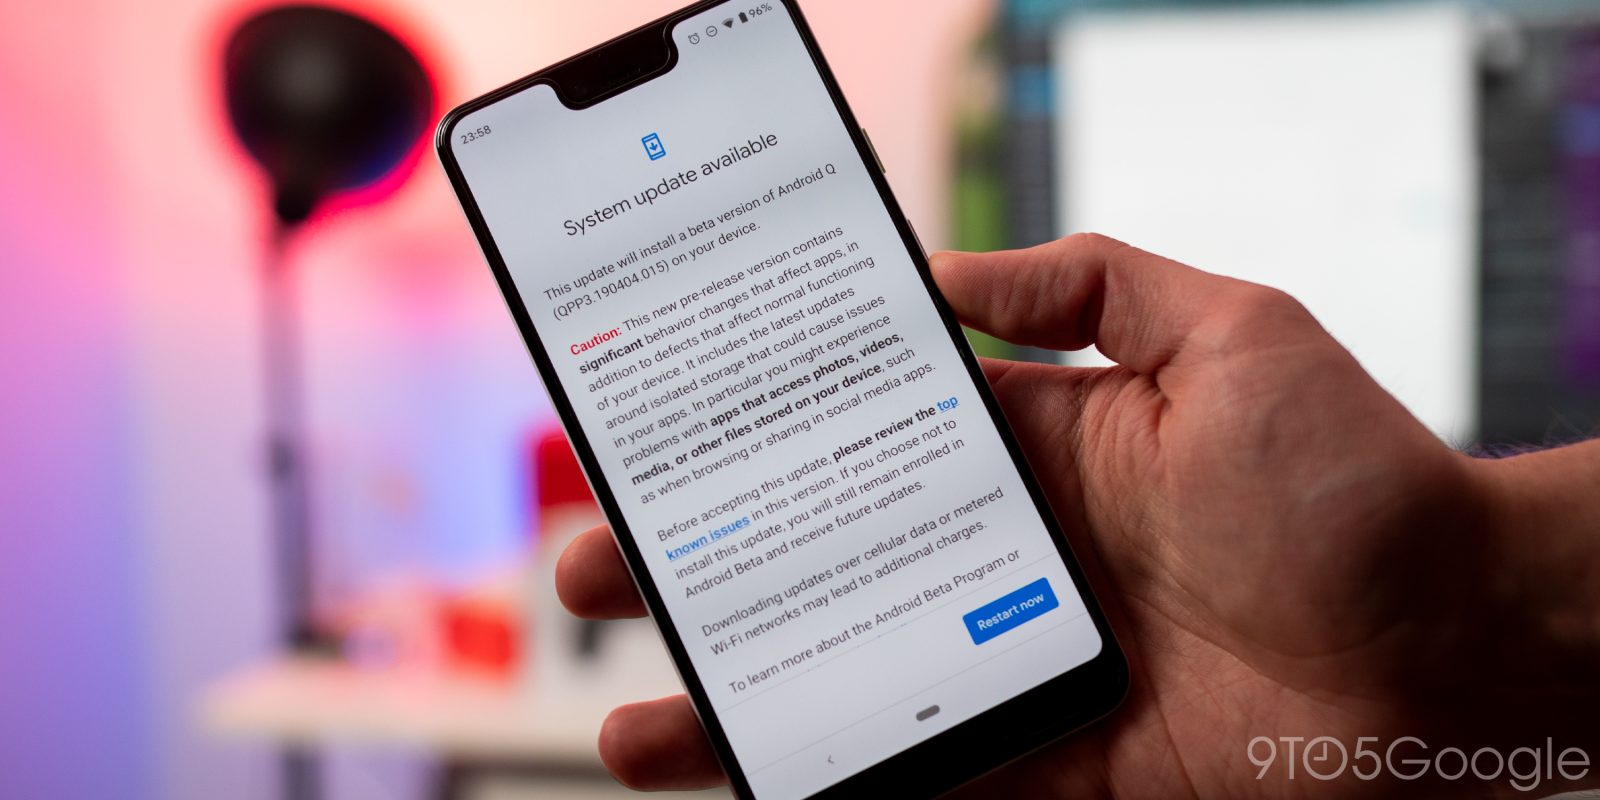 Android Q Beta 3 issues: Beware of OTA download issue - 9to5Google